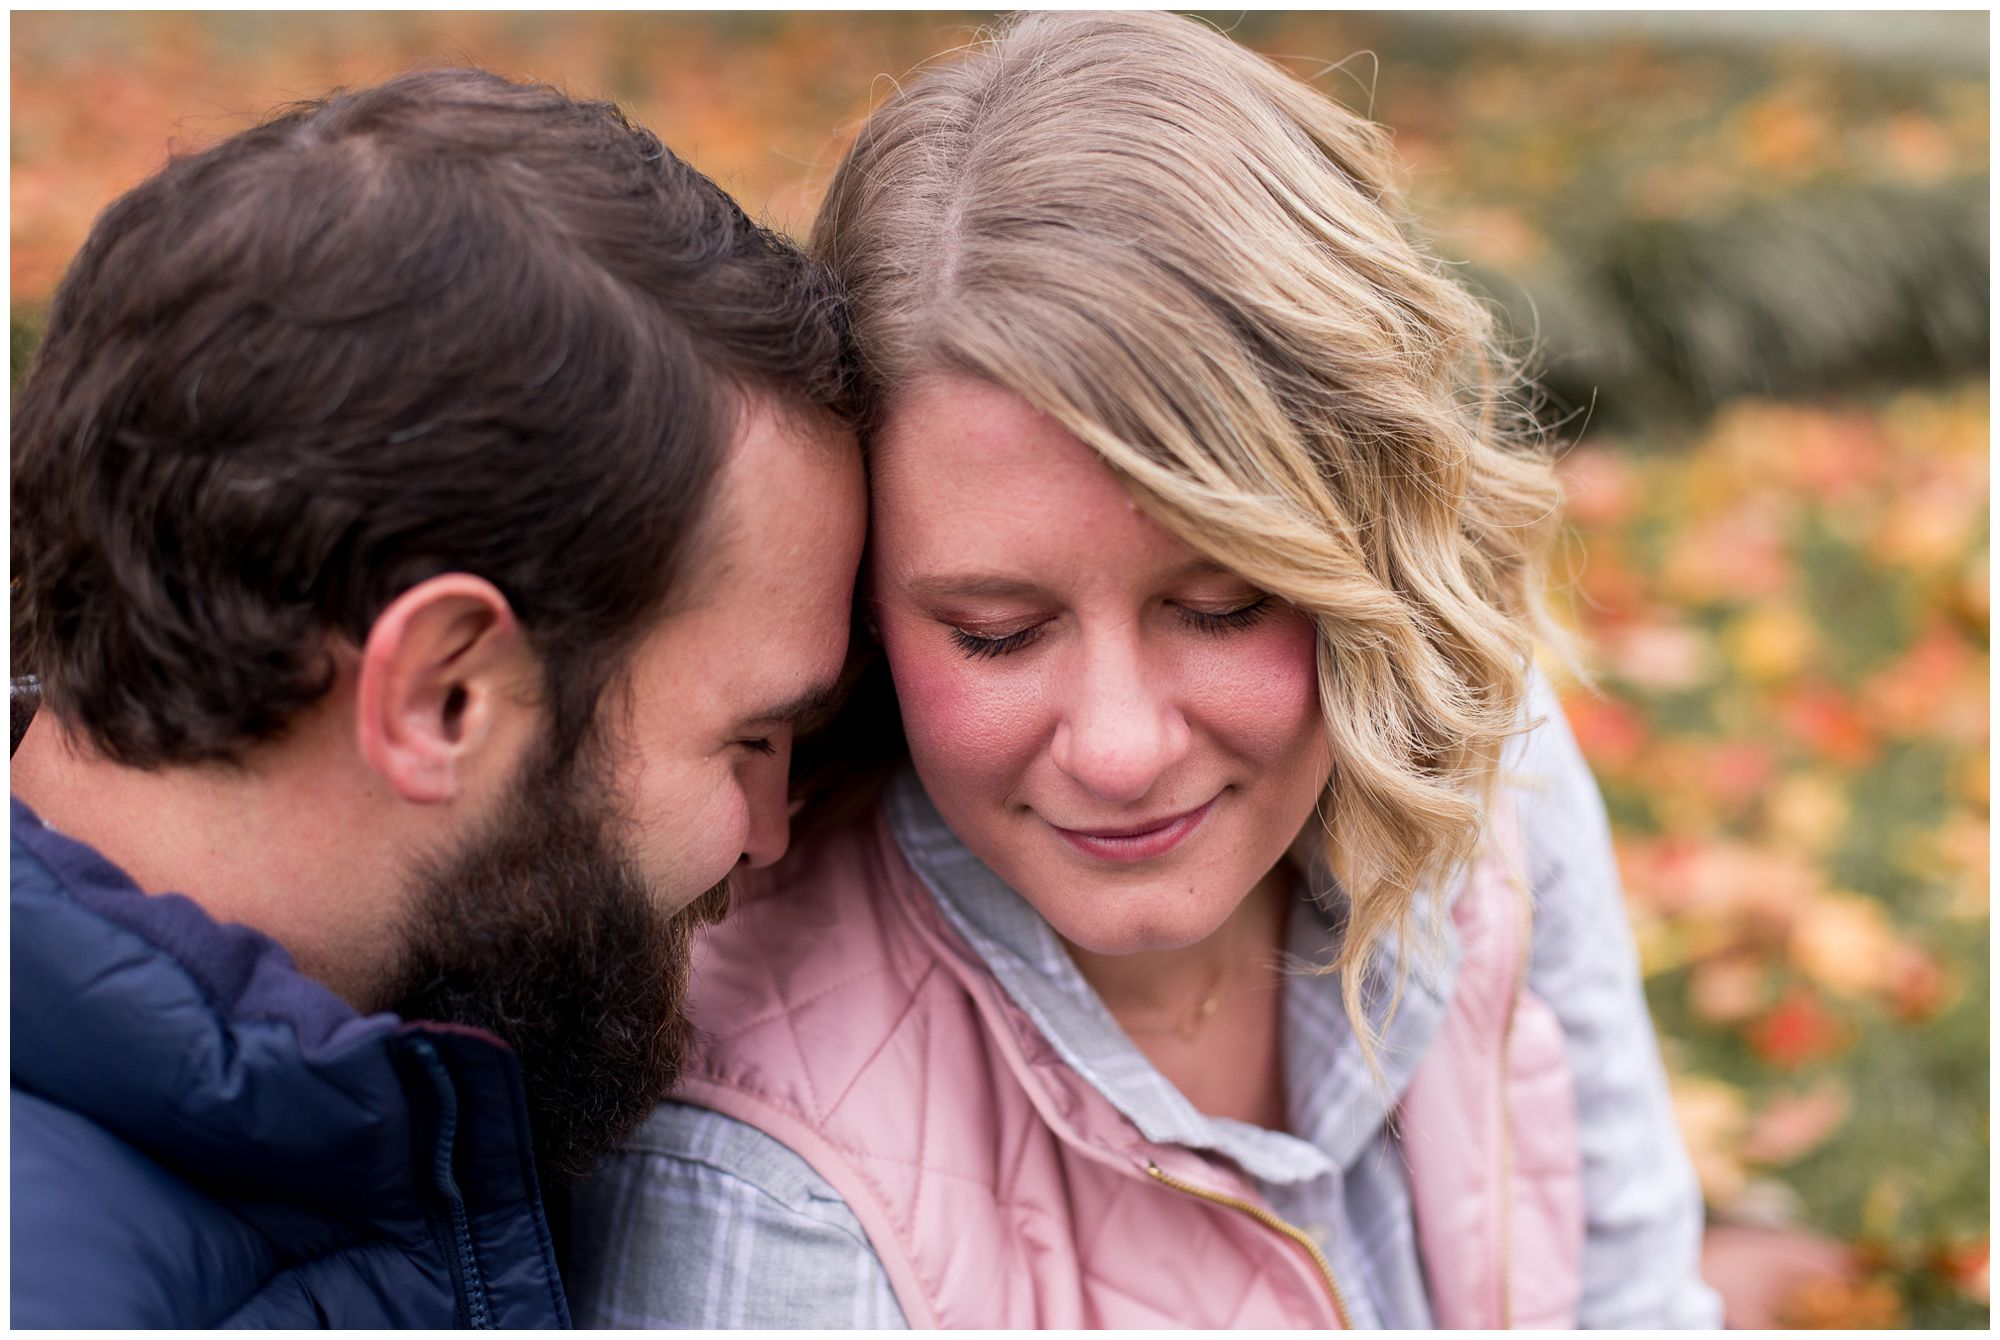 fall engagement session at Headwaters Park in downtown Fort Wayne